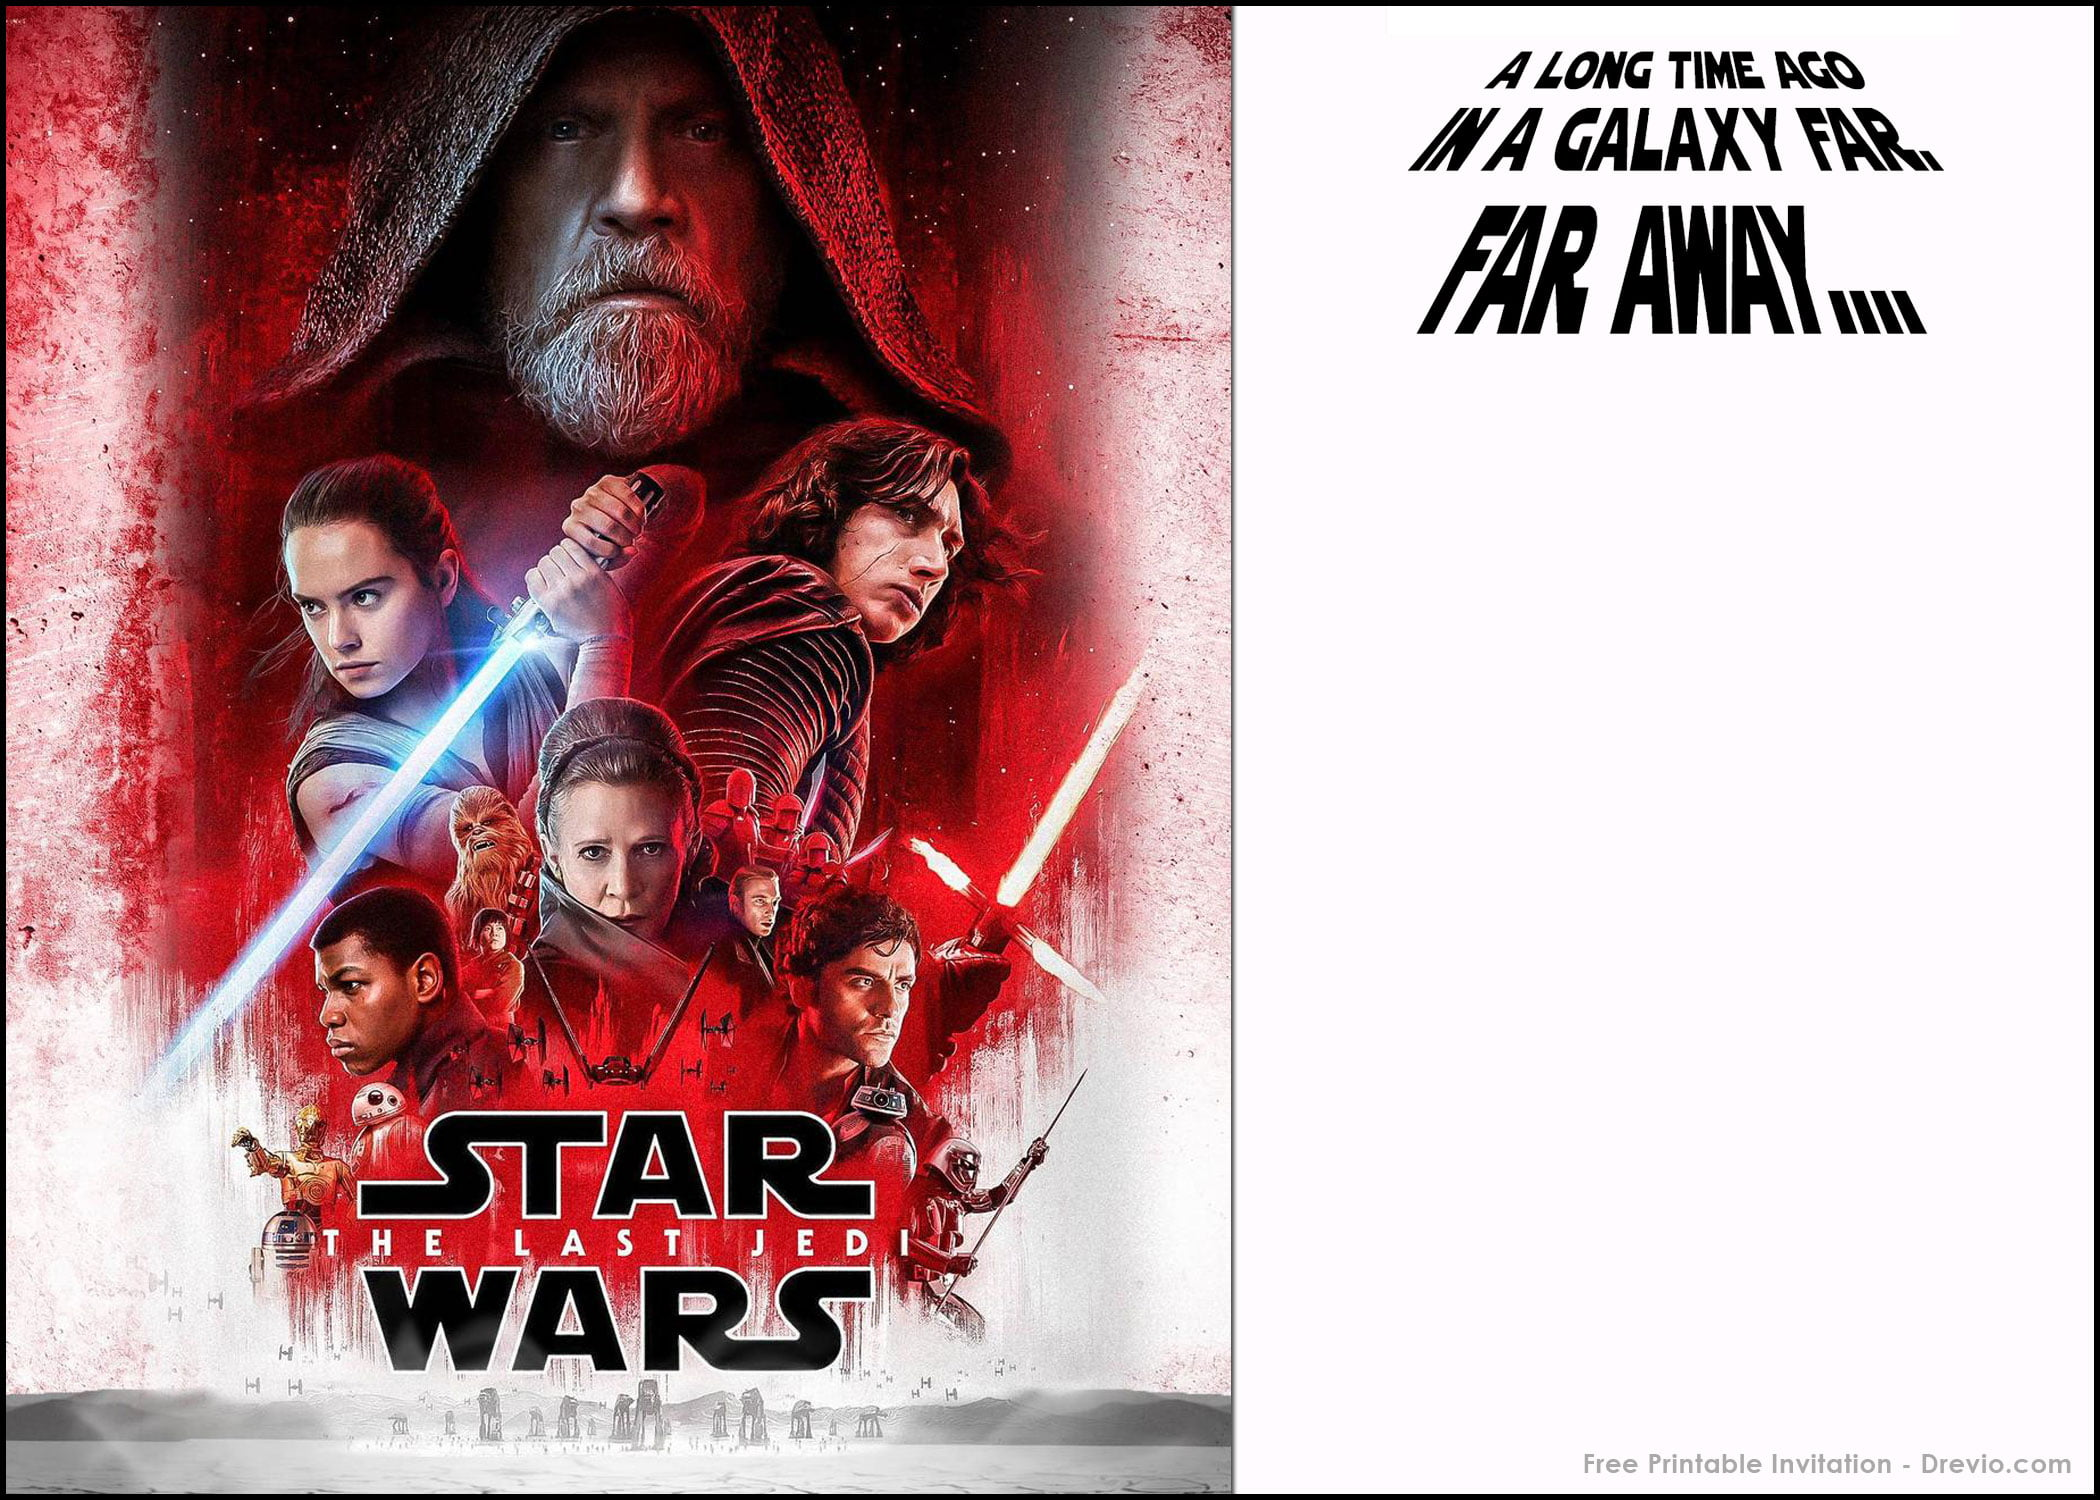 Simply Click The Invitation And Save Image As You Can Download This FREE Printable Star Wars Last Jedi For Free